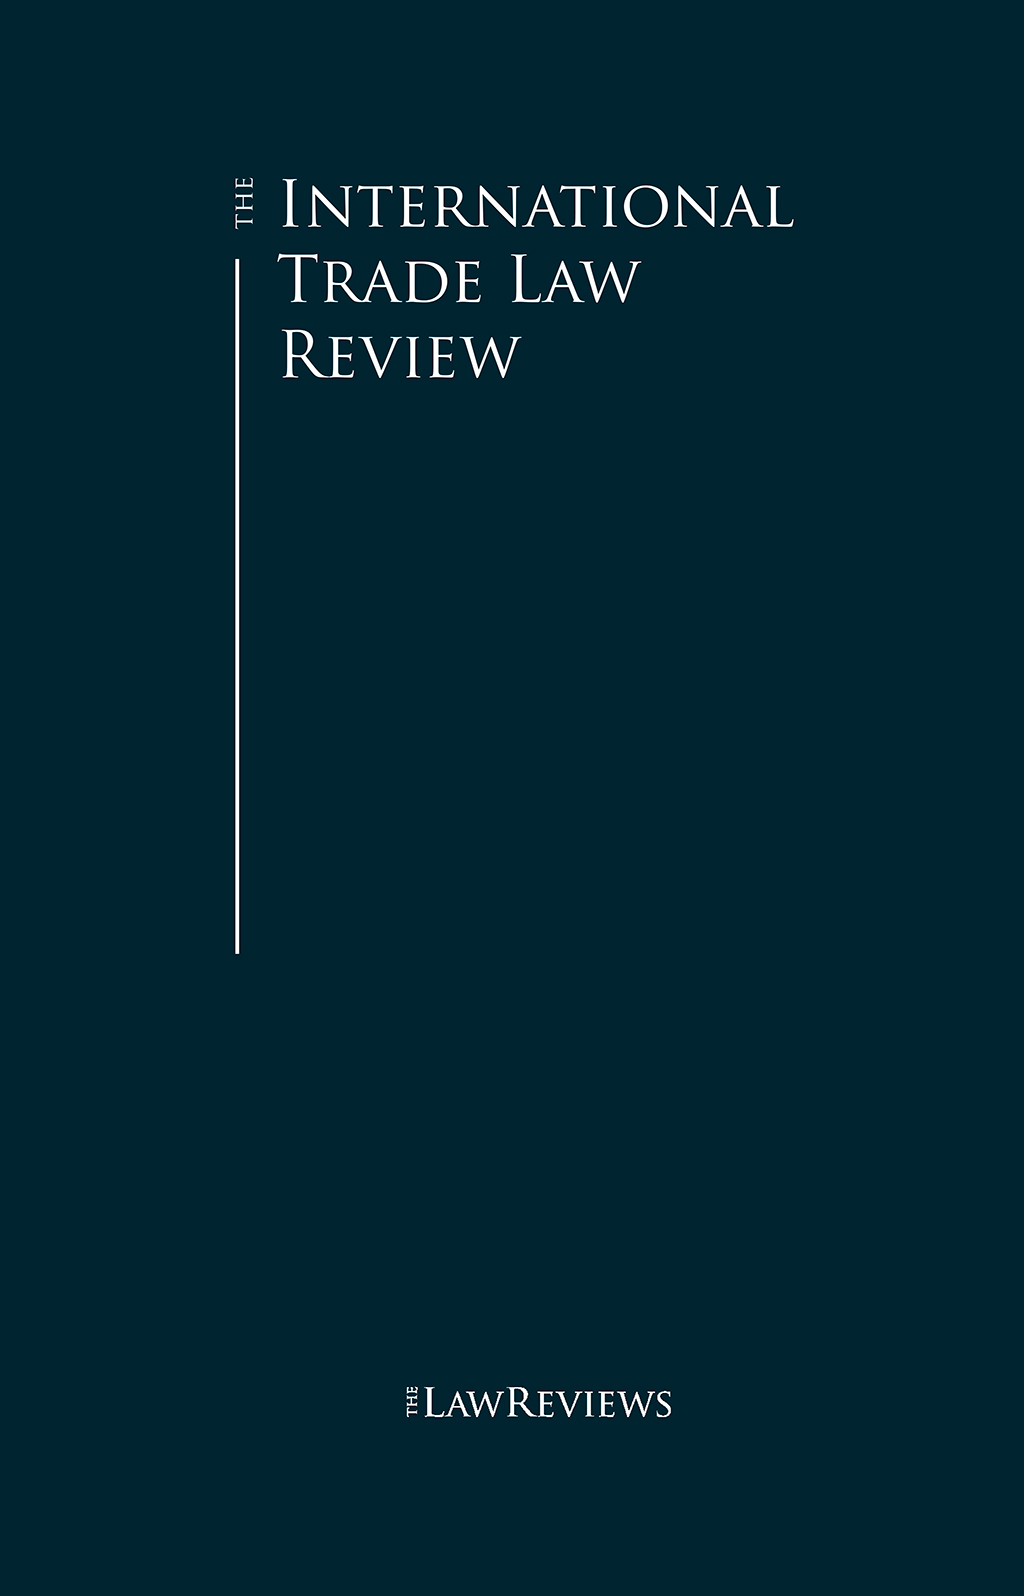 The International Trade Law Review